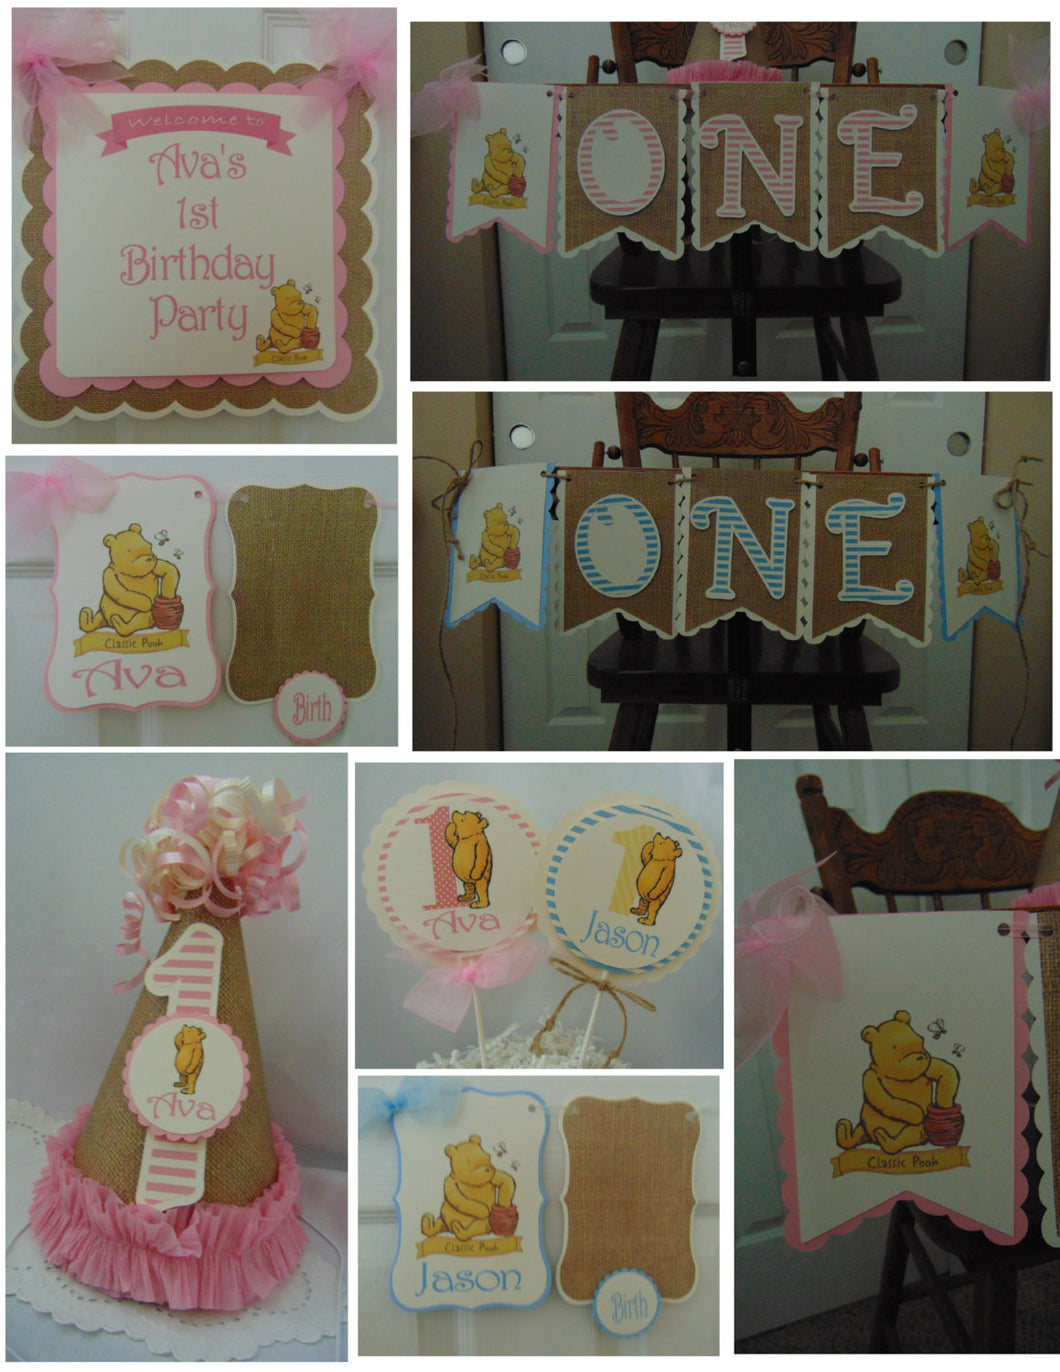 WINNIE THE POOH CLASSIC - PETITE - 1ST BIRTHDAY PARTY PACKAGE